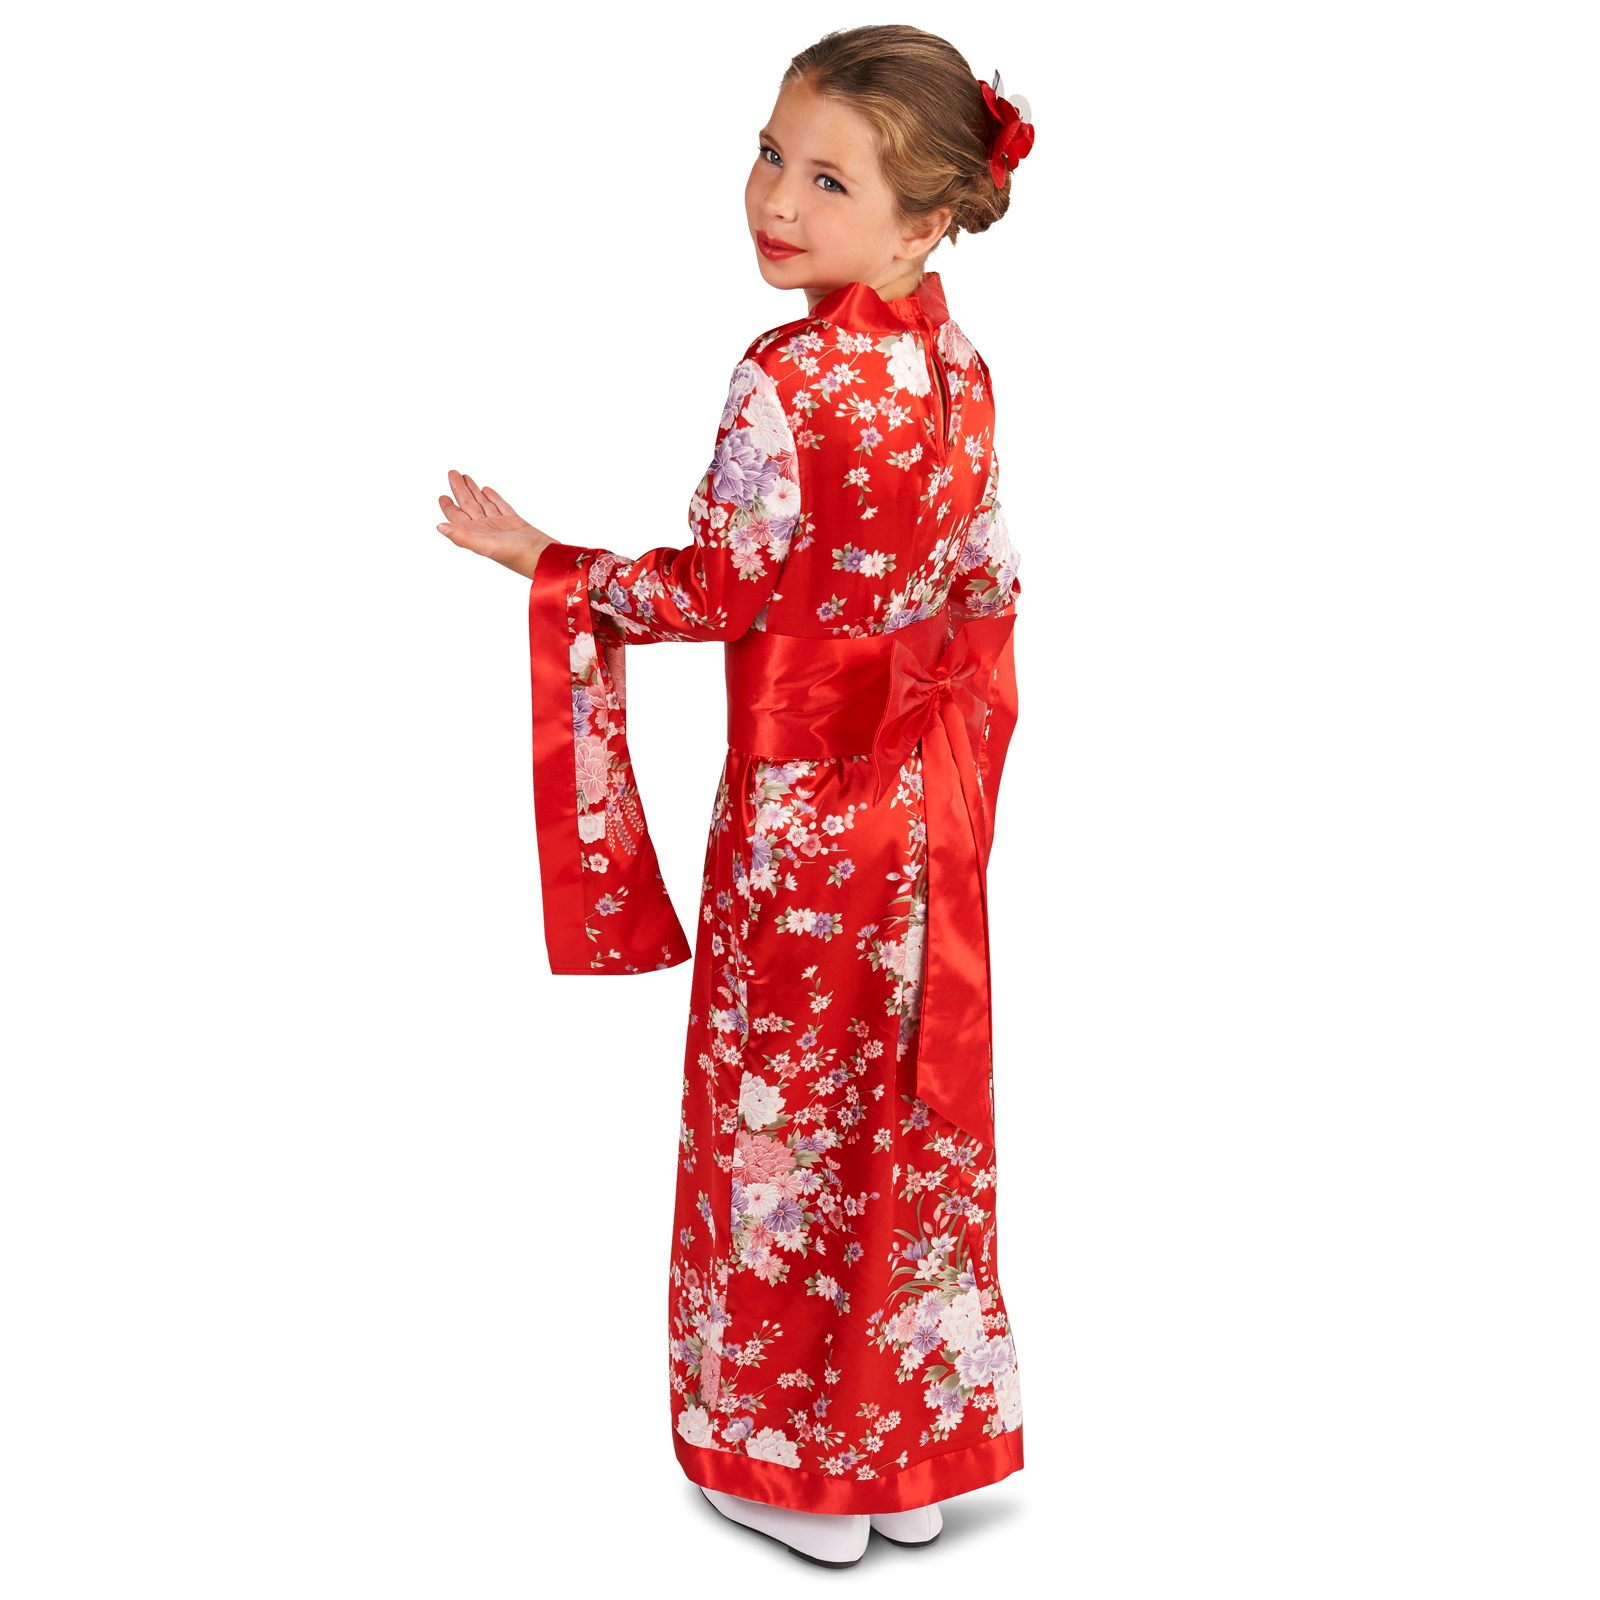 Child Kimono Princess Costume. This Child Kimono Princess Costume is a great choice for an international festival or other festive occasion! more.